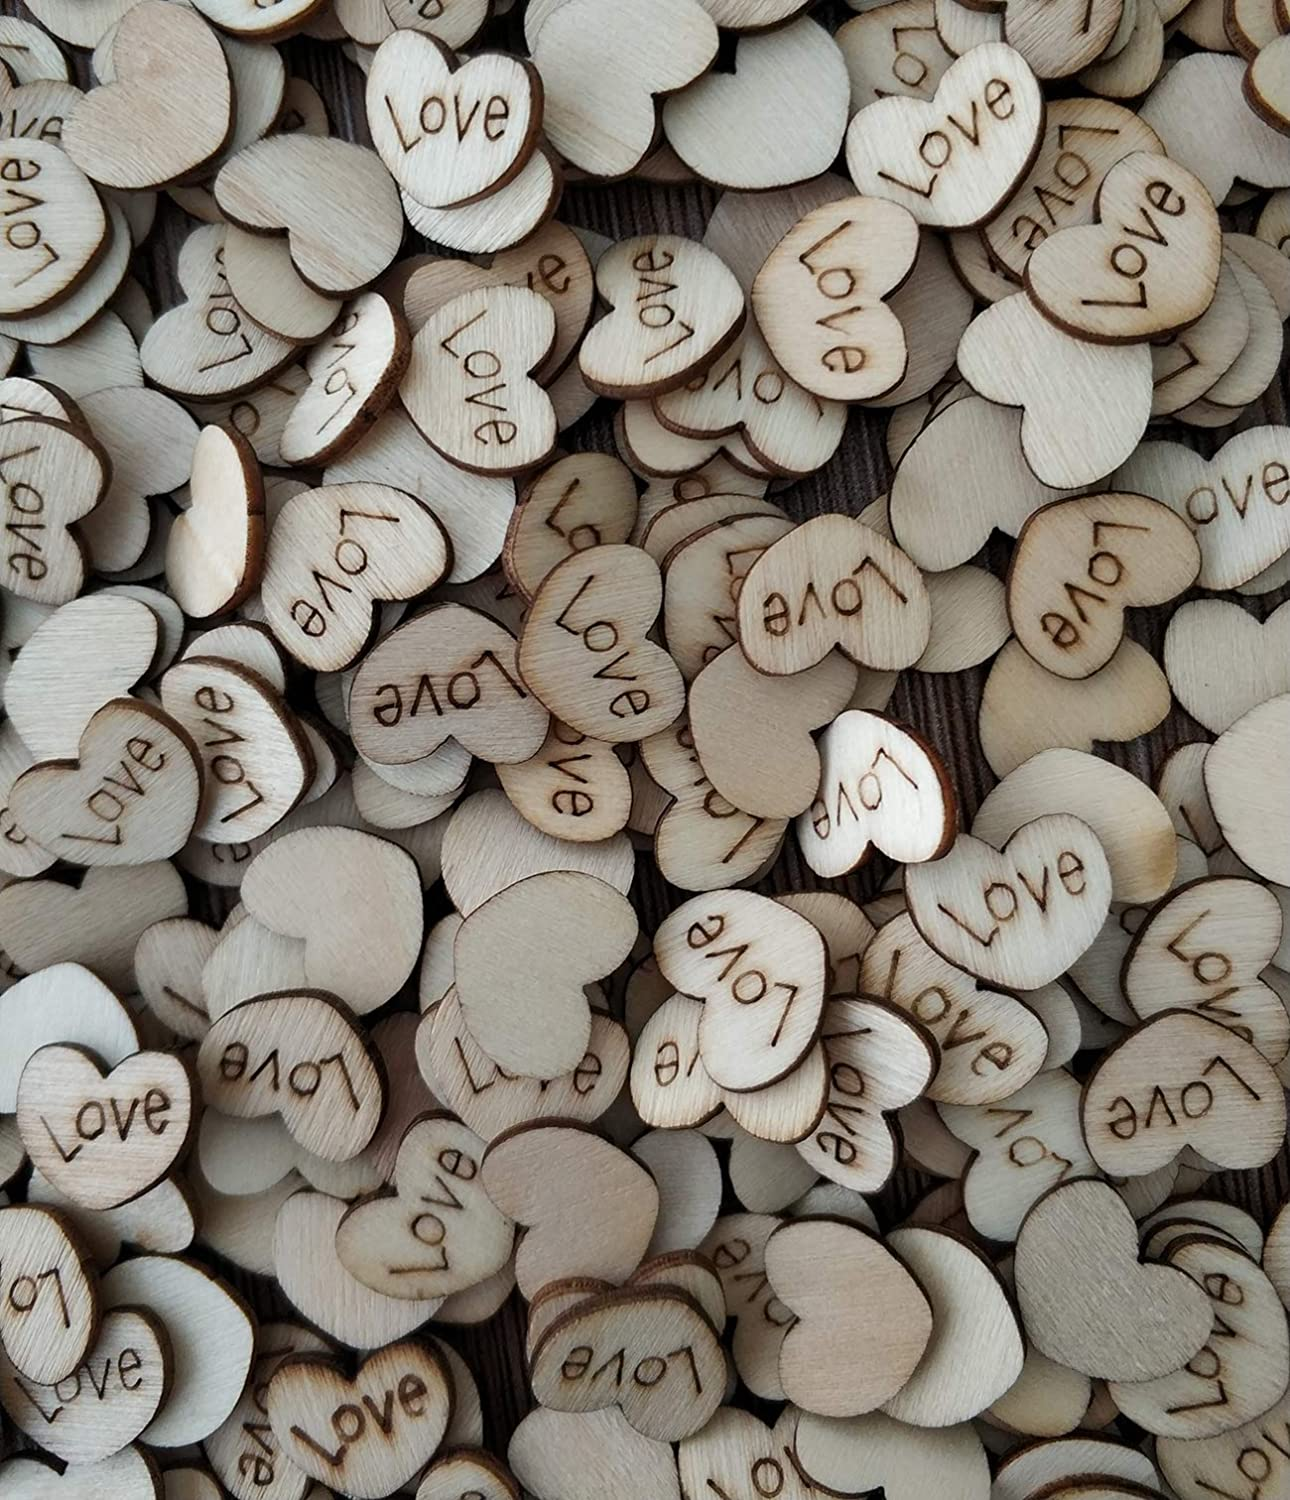 200set Love Heart Slices for Christmas Ornaments Wooden Crafts Making 10x3mm